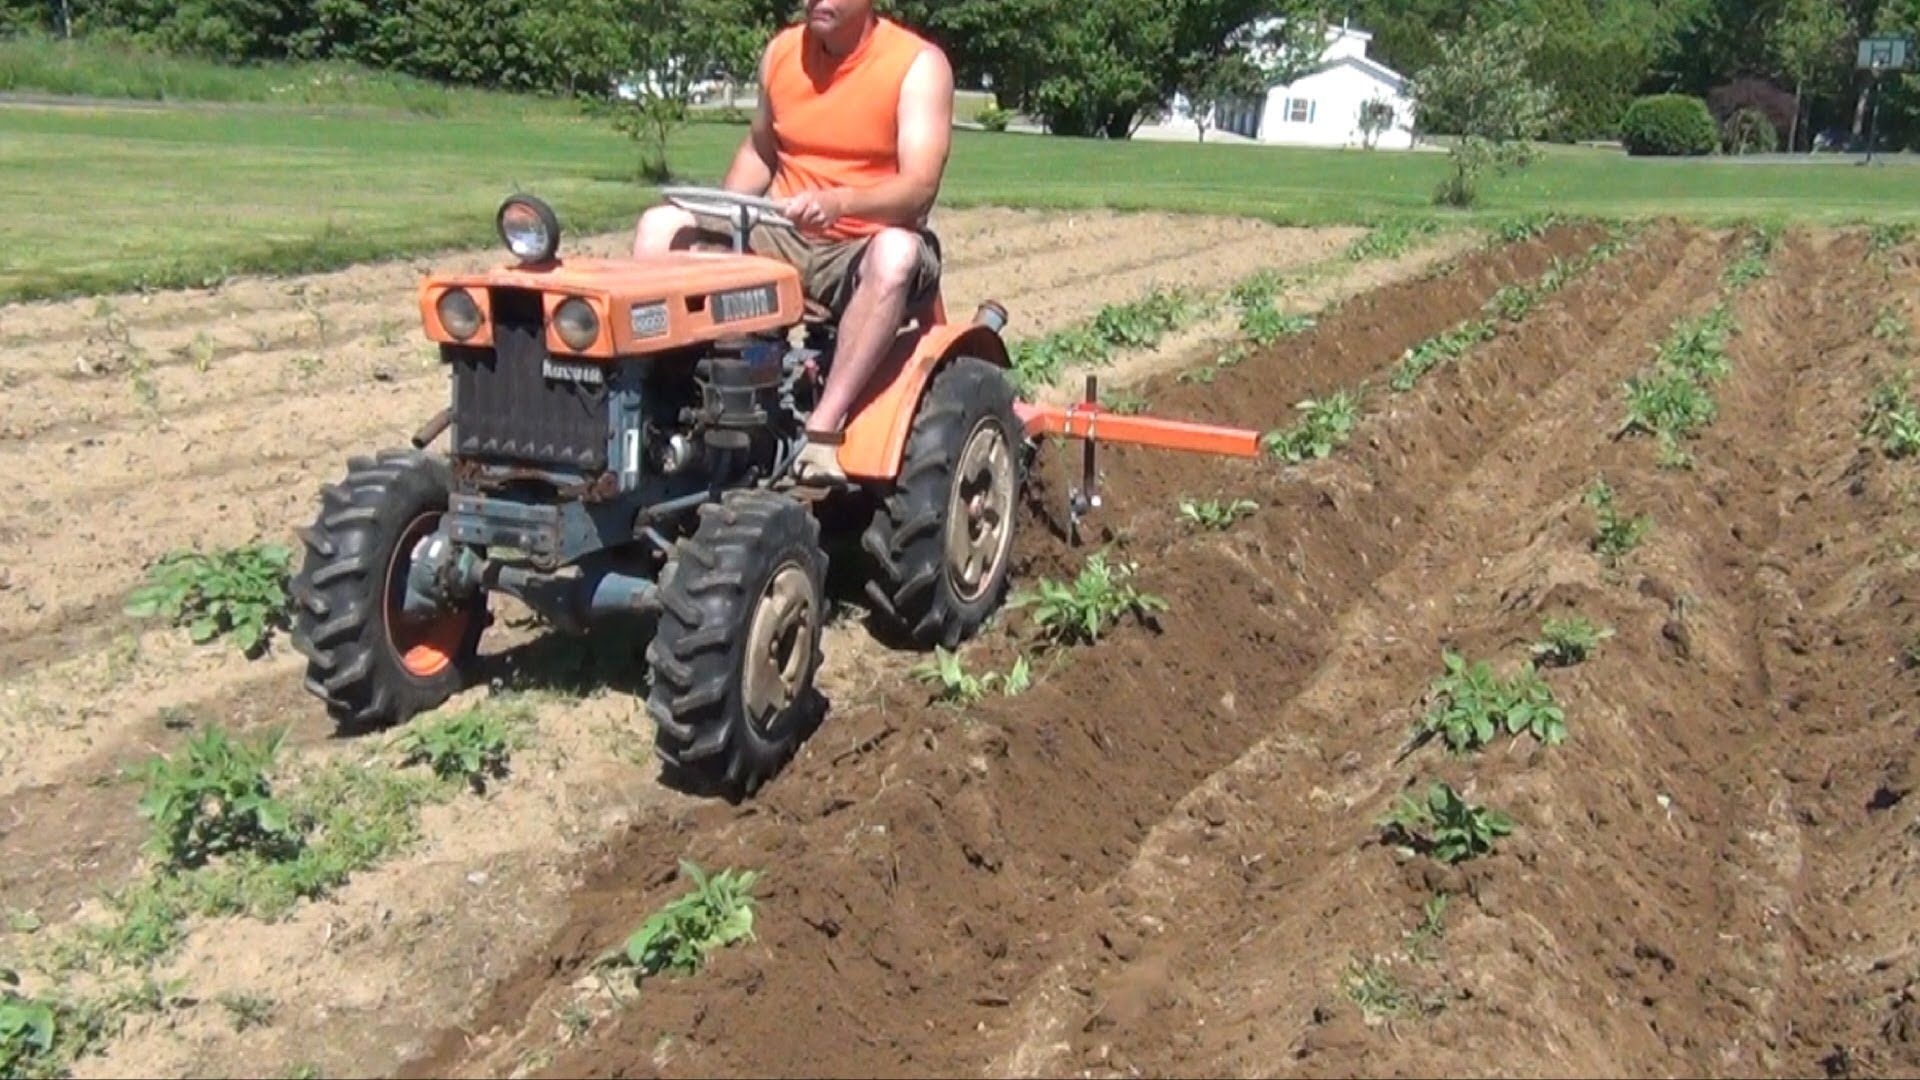 kubota b6000 hilling potatoes Small, but strong, suitable for family work.